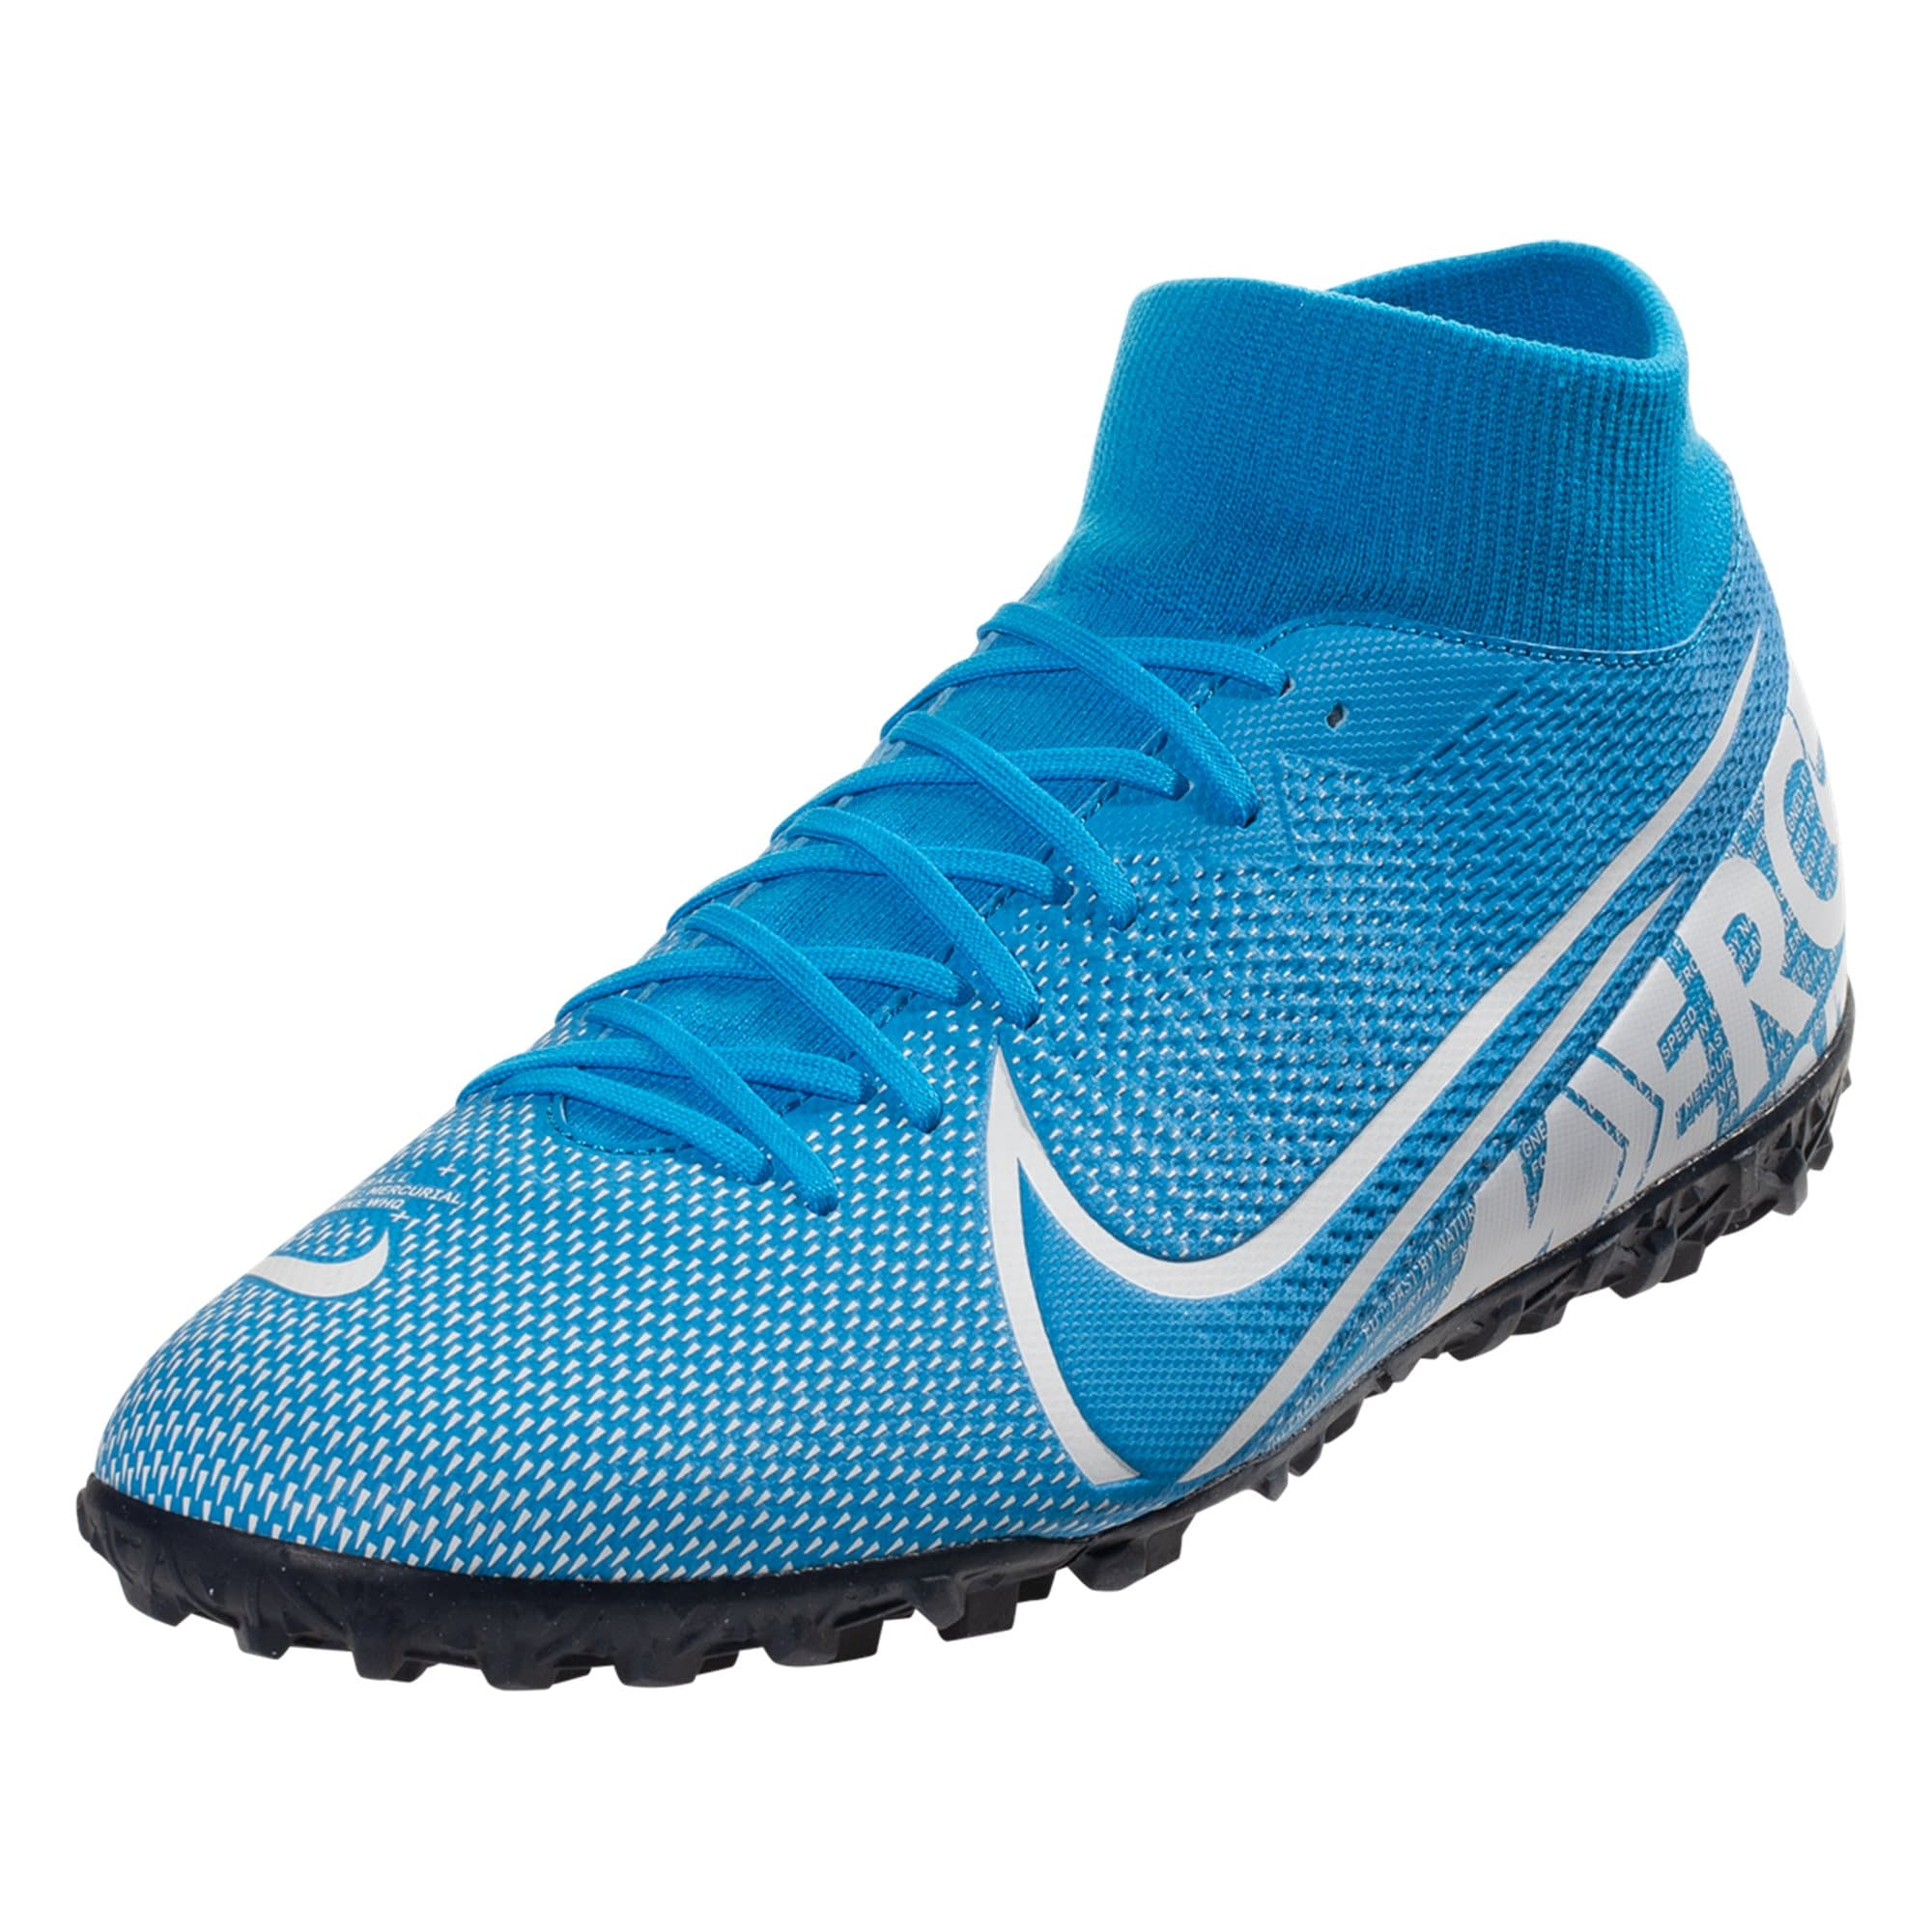 Nike Mercurial Superfly 7 Academy TF Soccer Shoe - Blue Hero / White / Obsidia